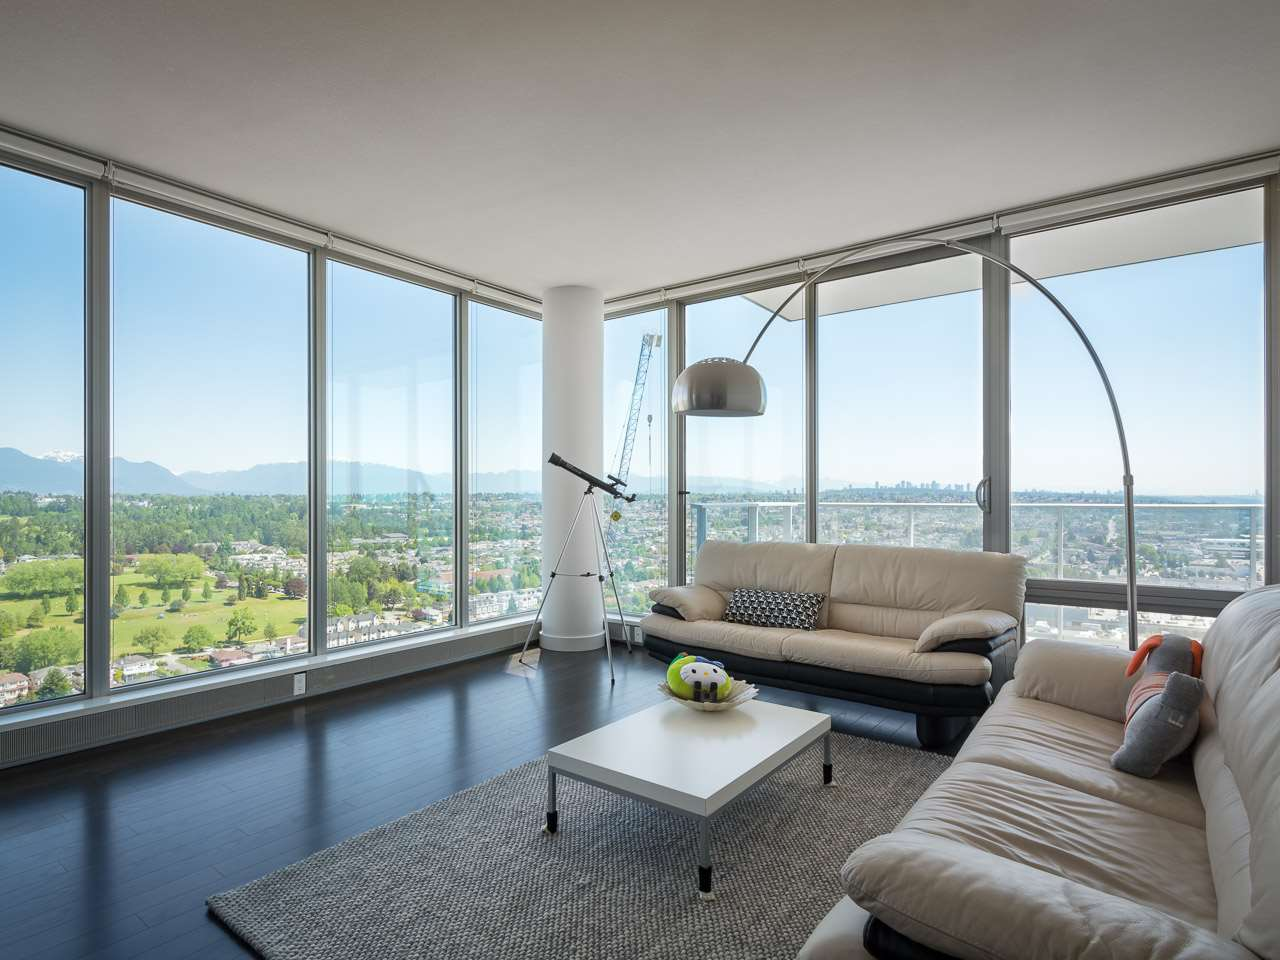 Gorgeous penthouse unit in MC2 South Tower. Fantastic panoramic views of North Shore, Mt Baker, and Fraser River! High end integrated appliances, stone countertops, large floor to ceiling windows and wood flooring. Open kitchen with island counter. Luxurious 4 piece ensuite bathroom in master bedroom. Double parking spot close to elevator. Concierge service, lounge, gym and rooftop garden available. Across the street from skytrain, shopping, restaurants and entertainment district. Call now and book your showing appointment today!